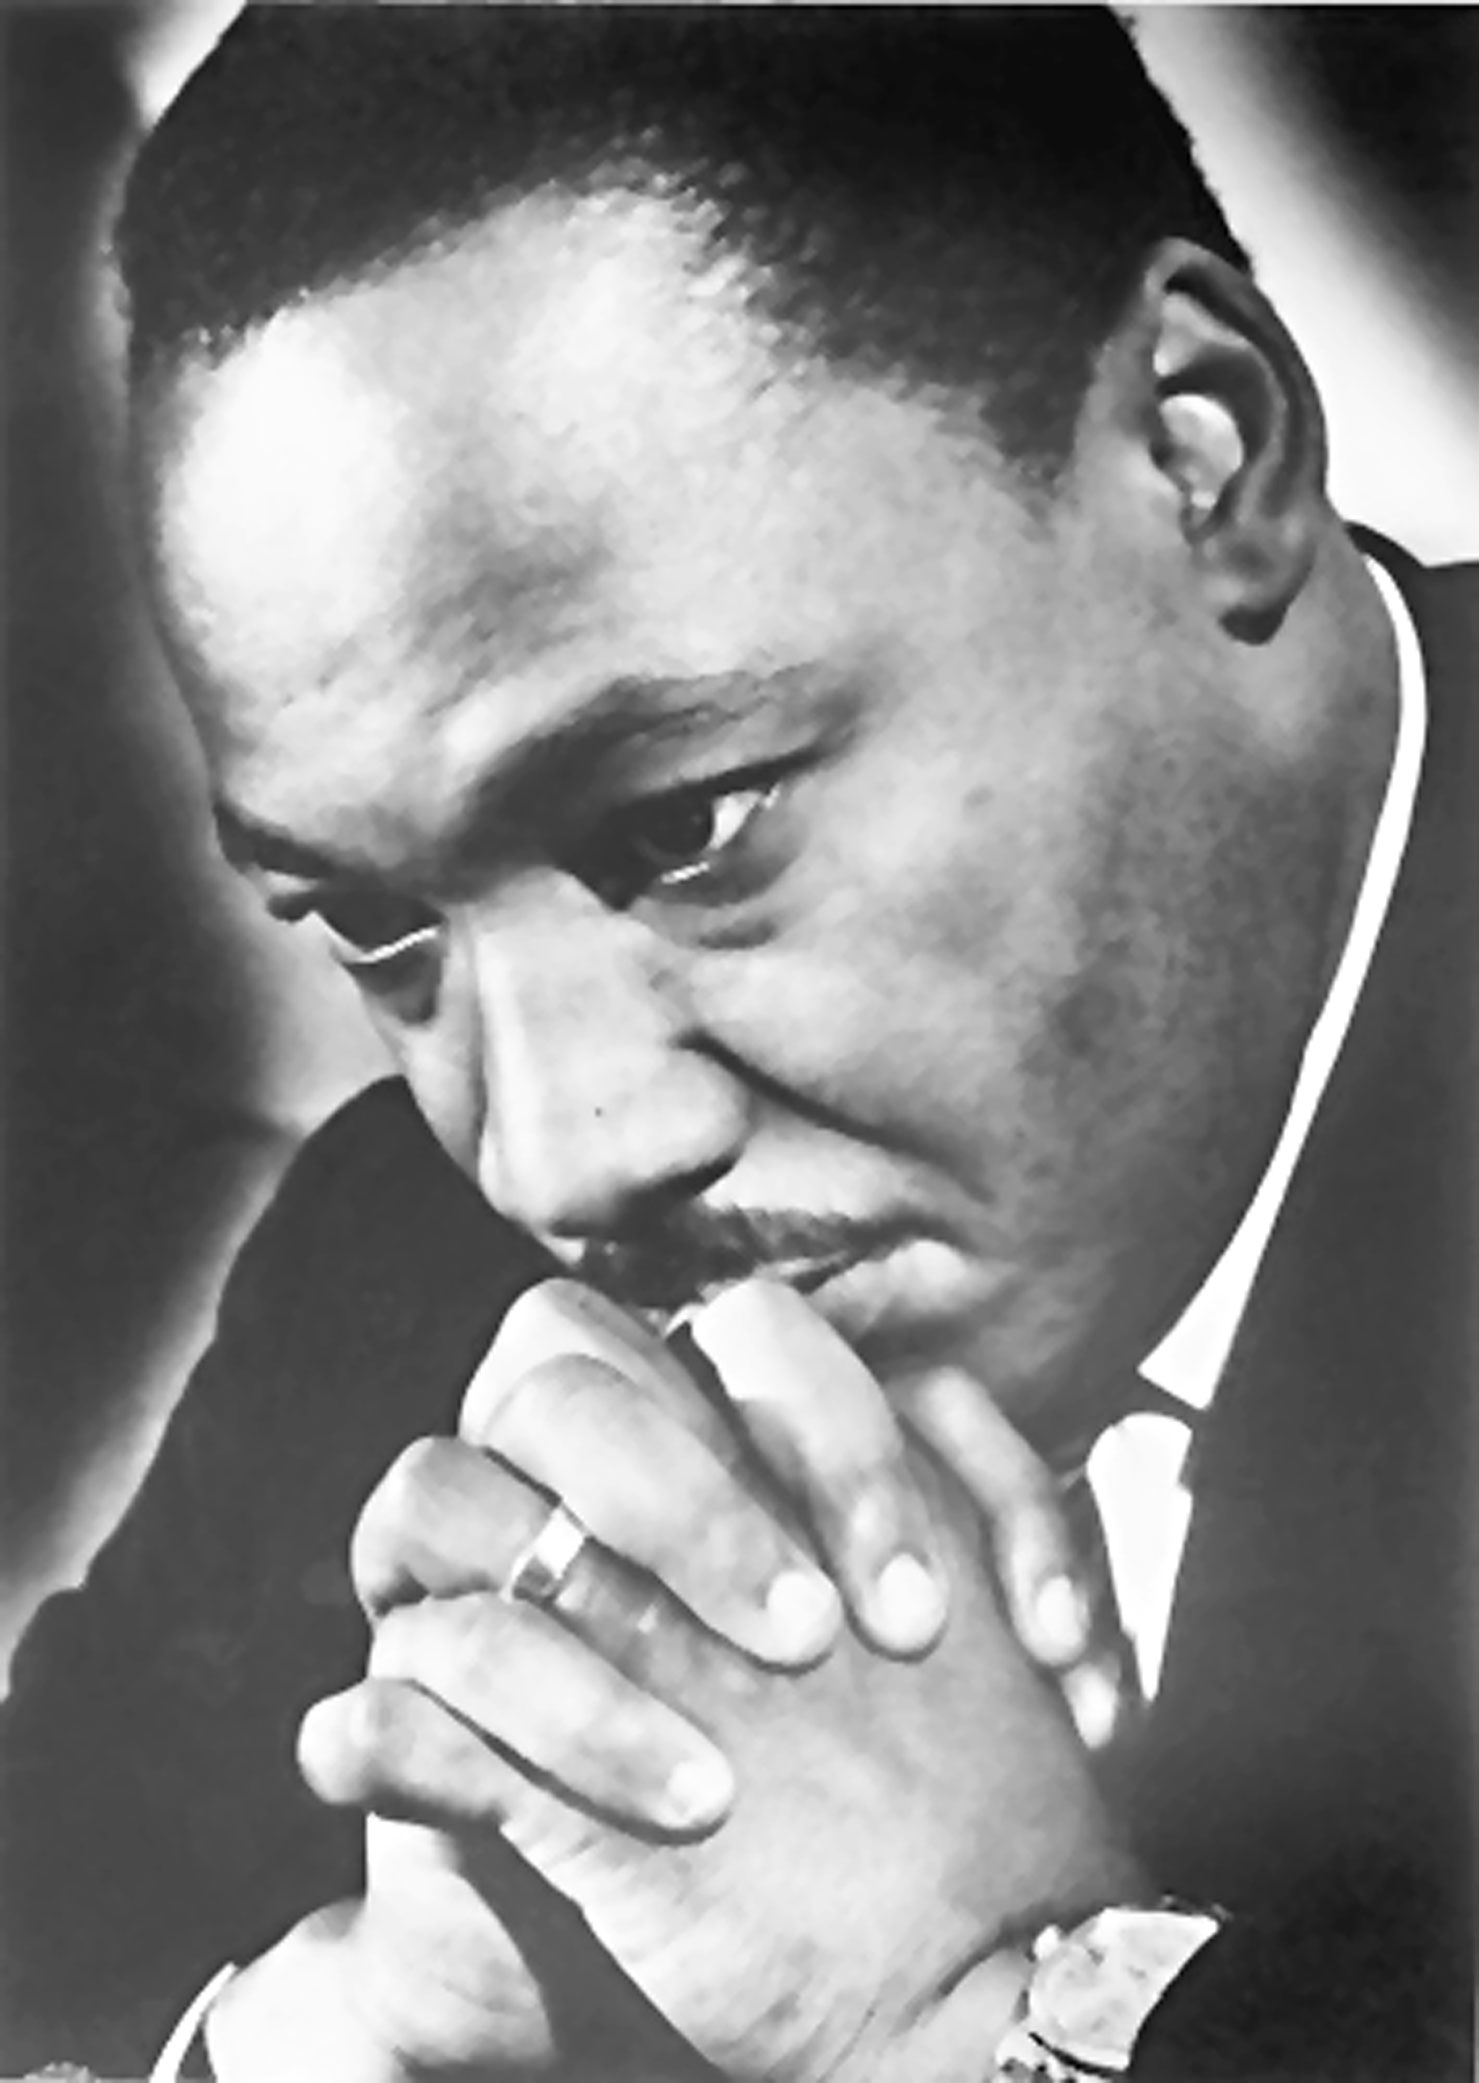 martin luther king - photo #17